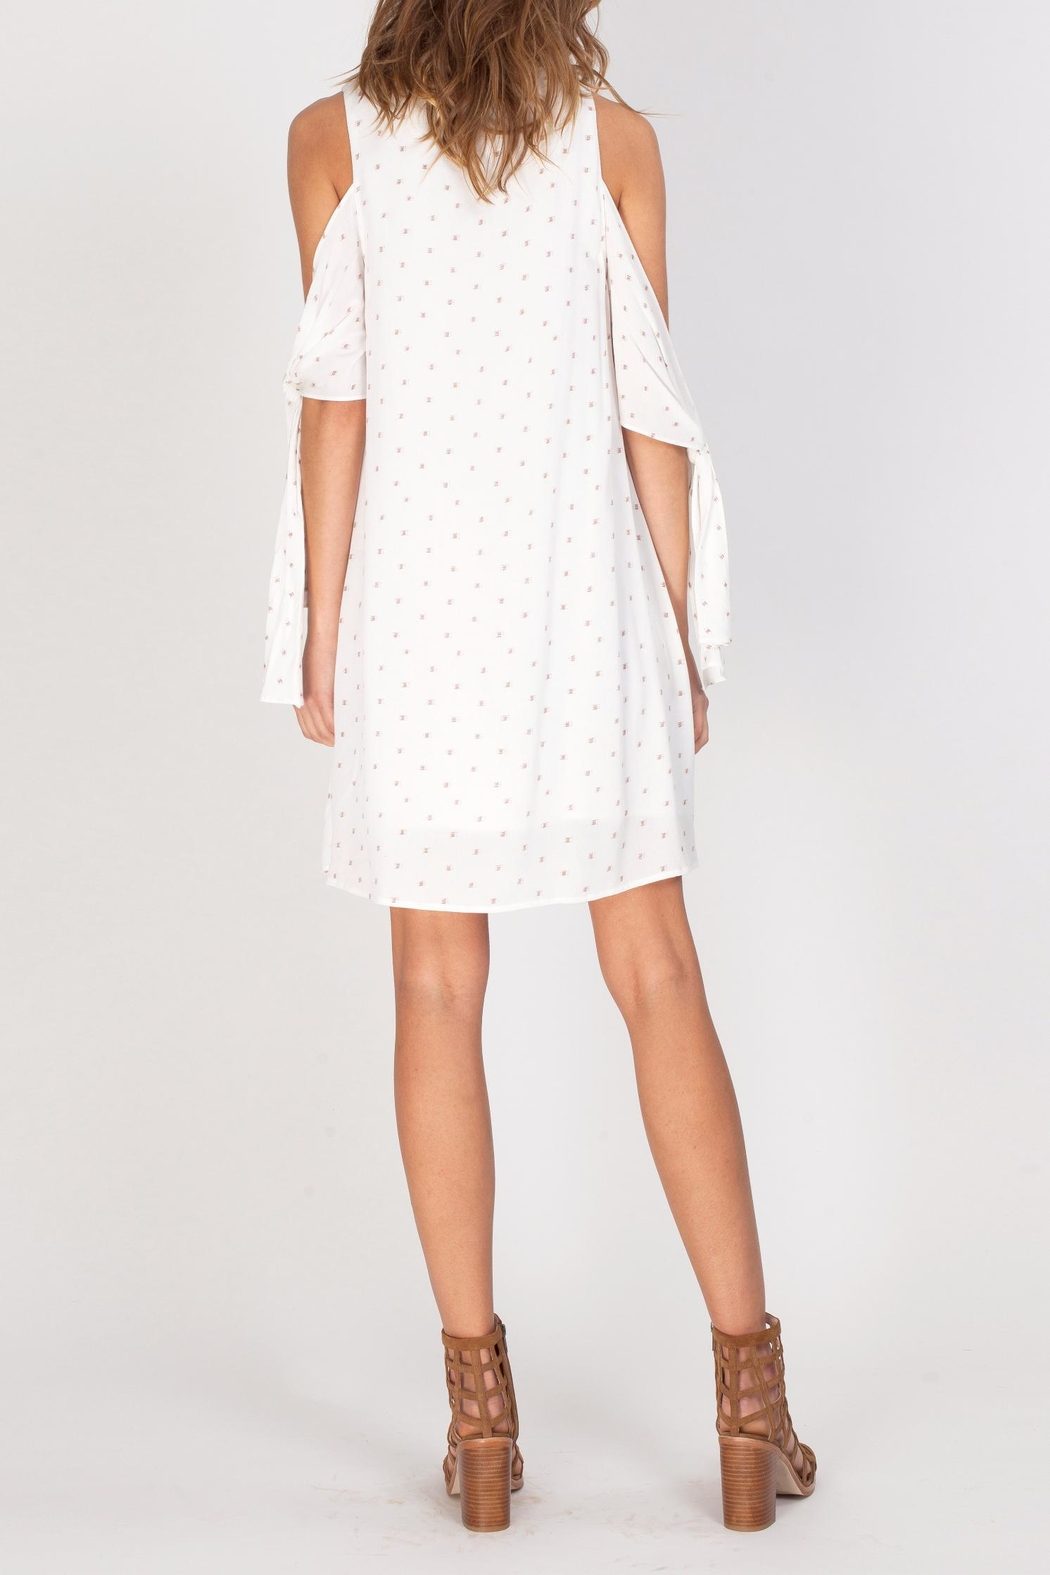 Gentle Fawn Coretta Dress - Side Cropped Image